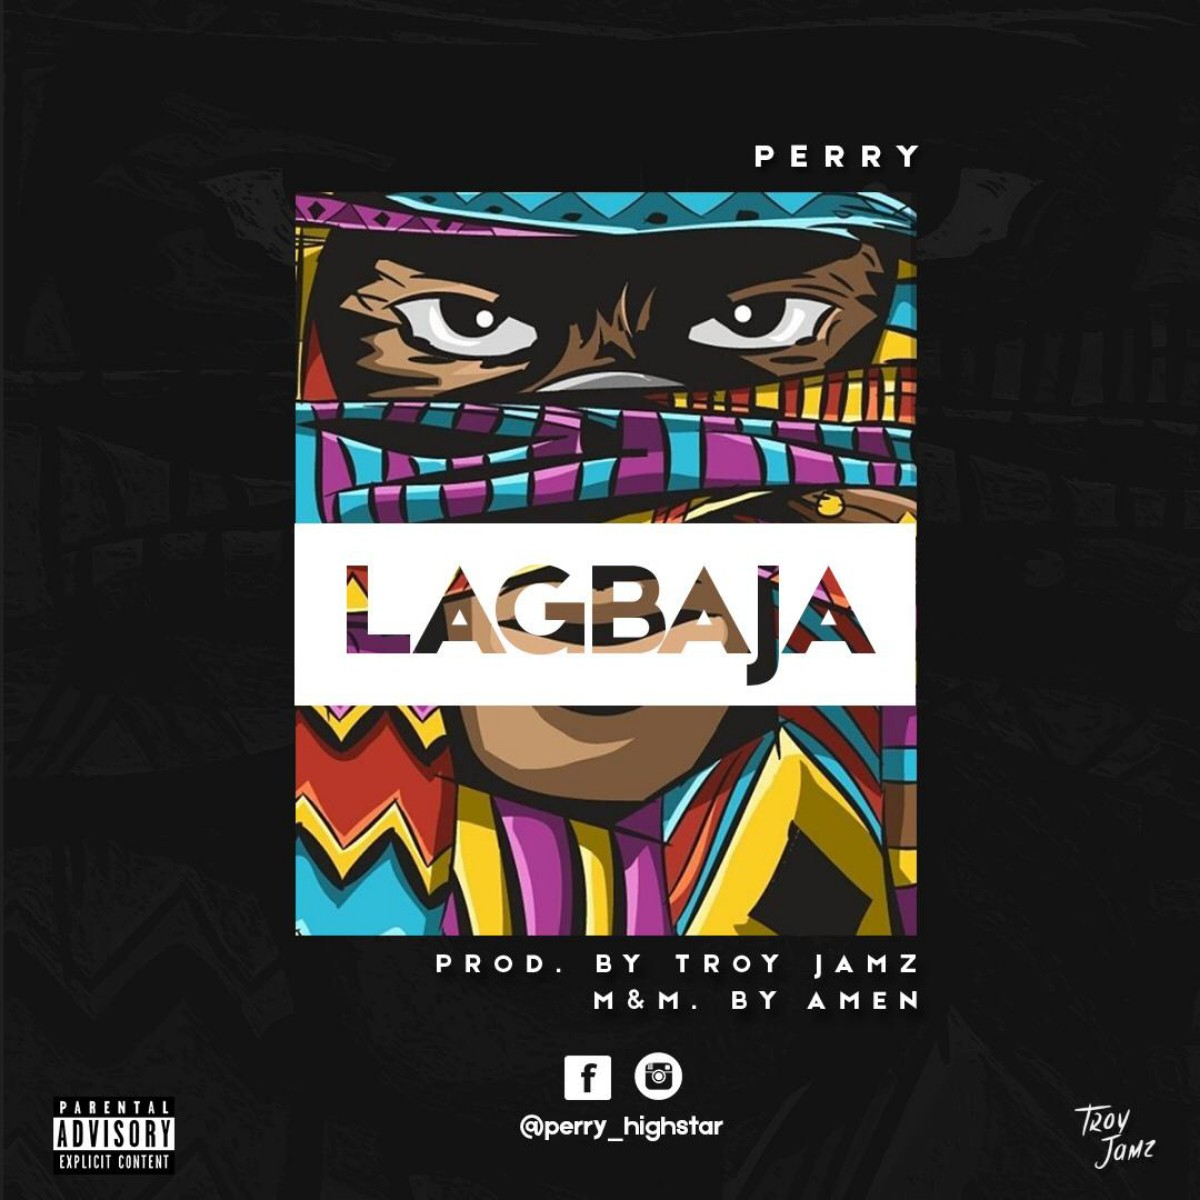 (MUSIC/AUDIO): Perry – Lagbaja(Prod. By Troy Jamz)